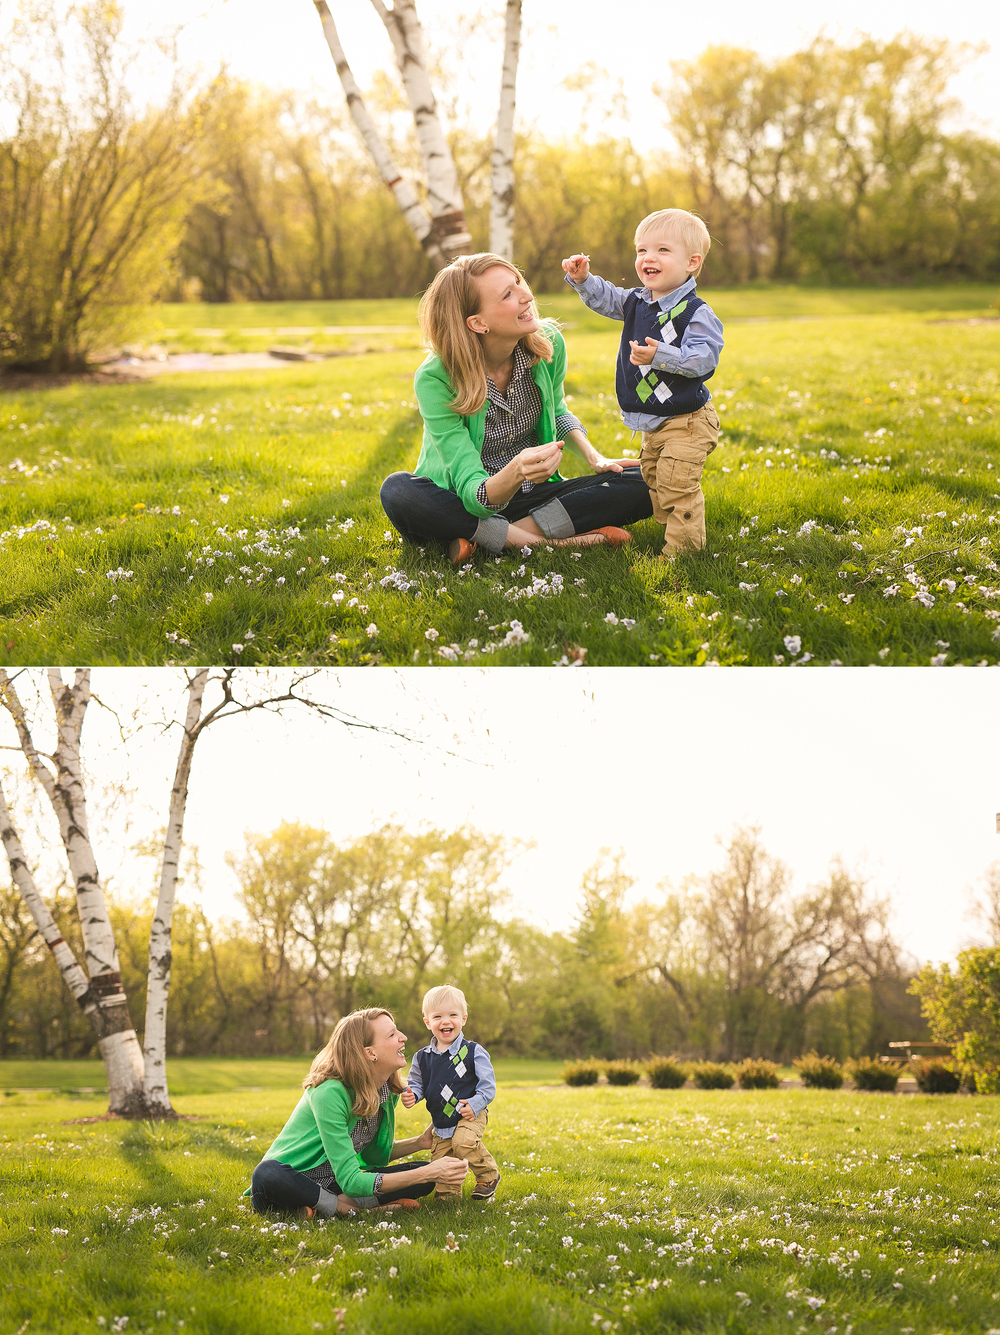 ashley vos photography seattle area lifestyle family photographer_0442.jpg